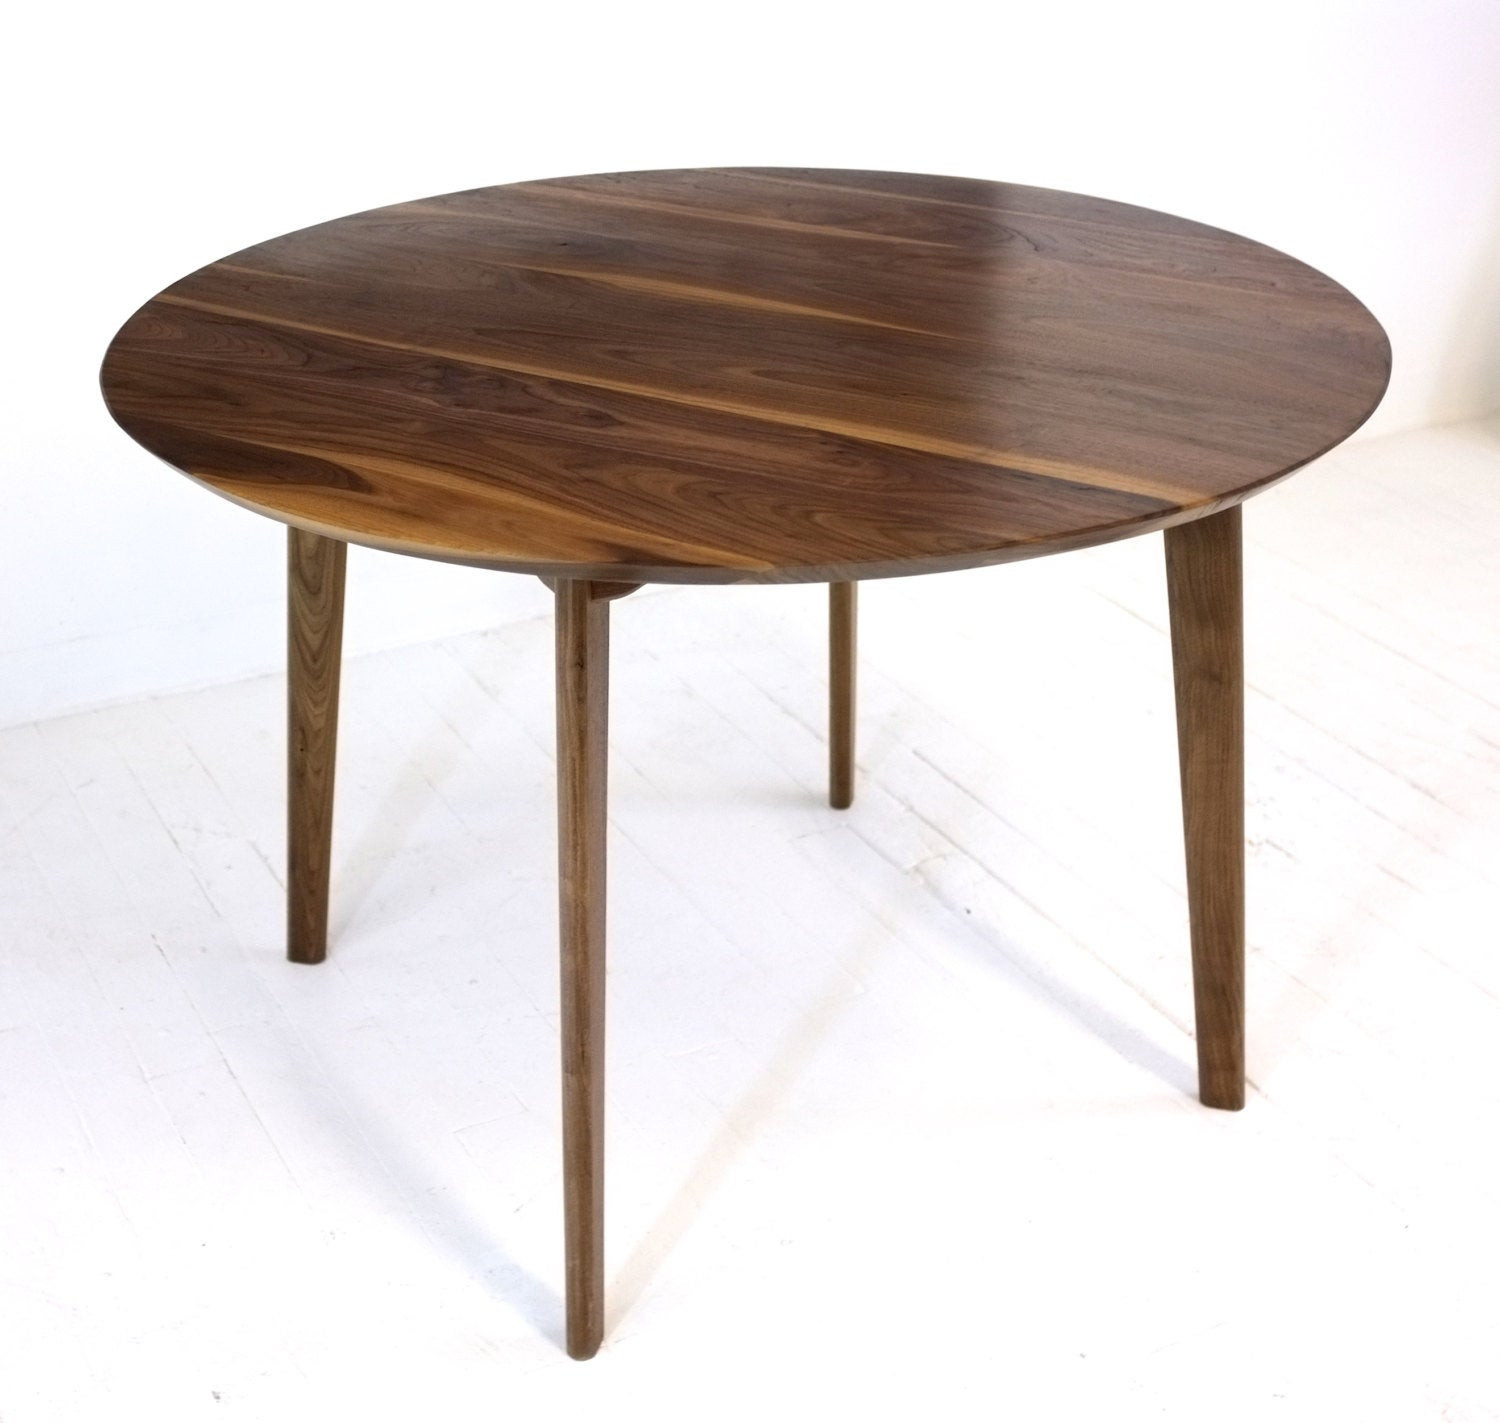 Best ideas about Mid Century Modern Dining Table . Save or Pin Mid Century Modern Round Dining Table Cafe Table Solid Now.